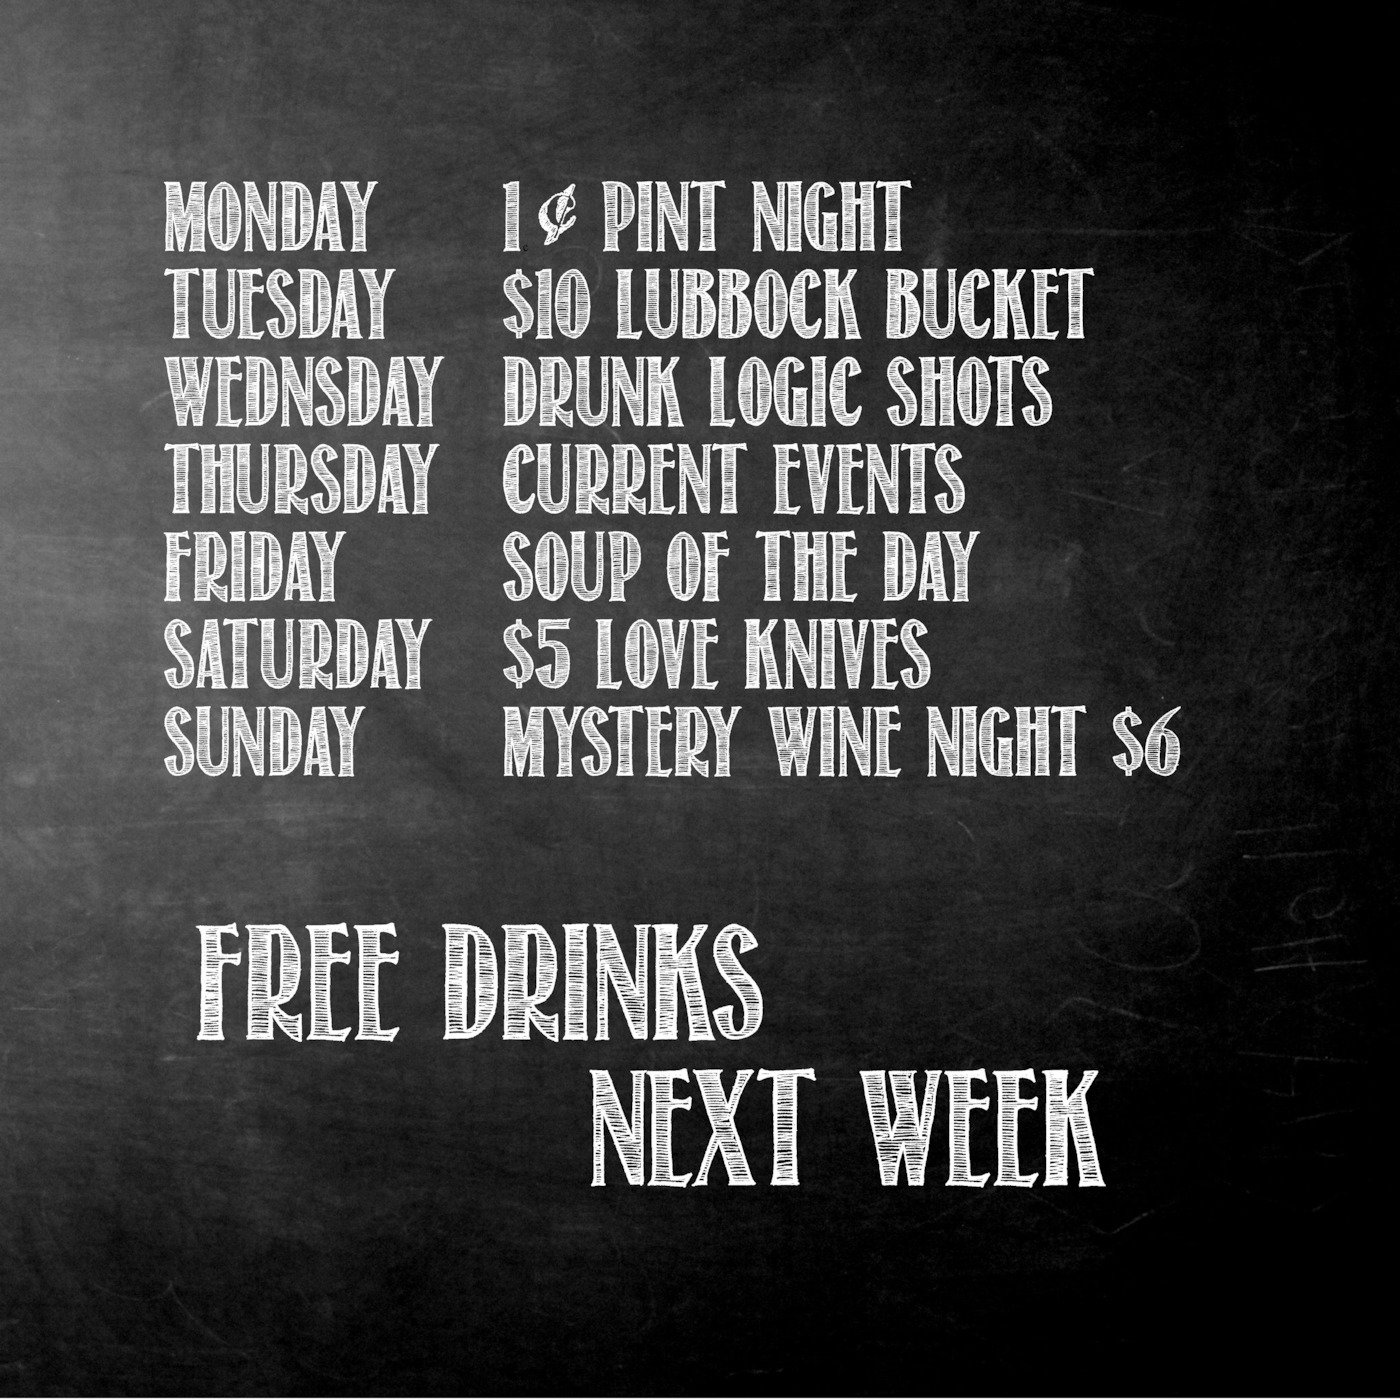 Free Drinks Next Week